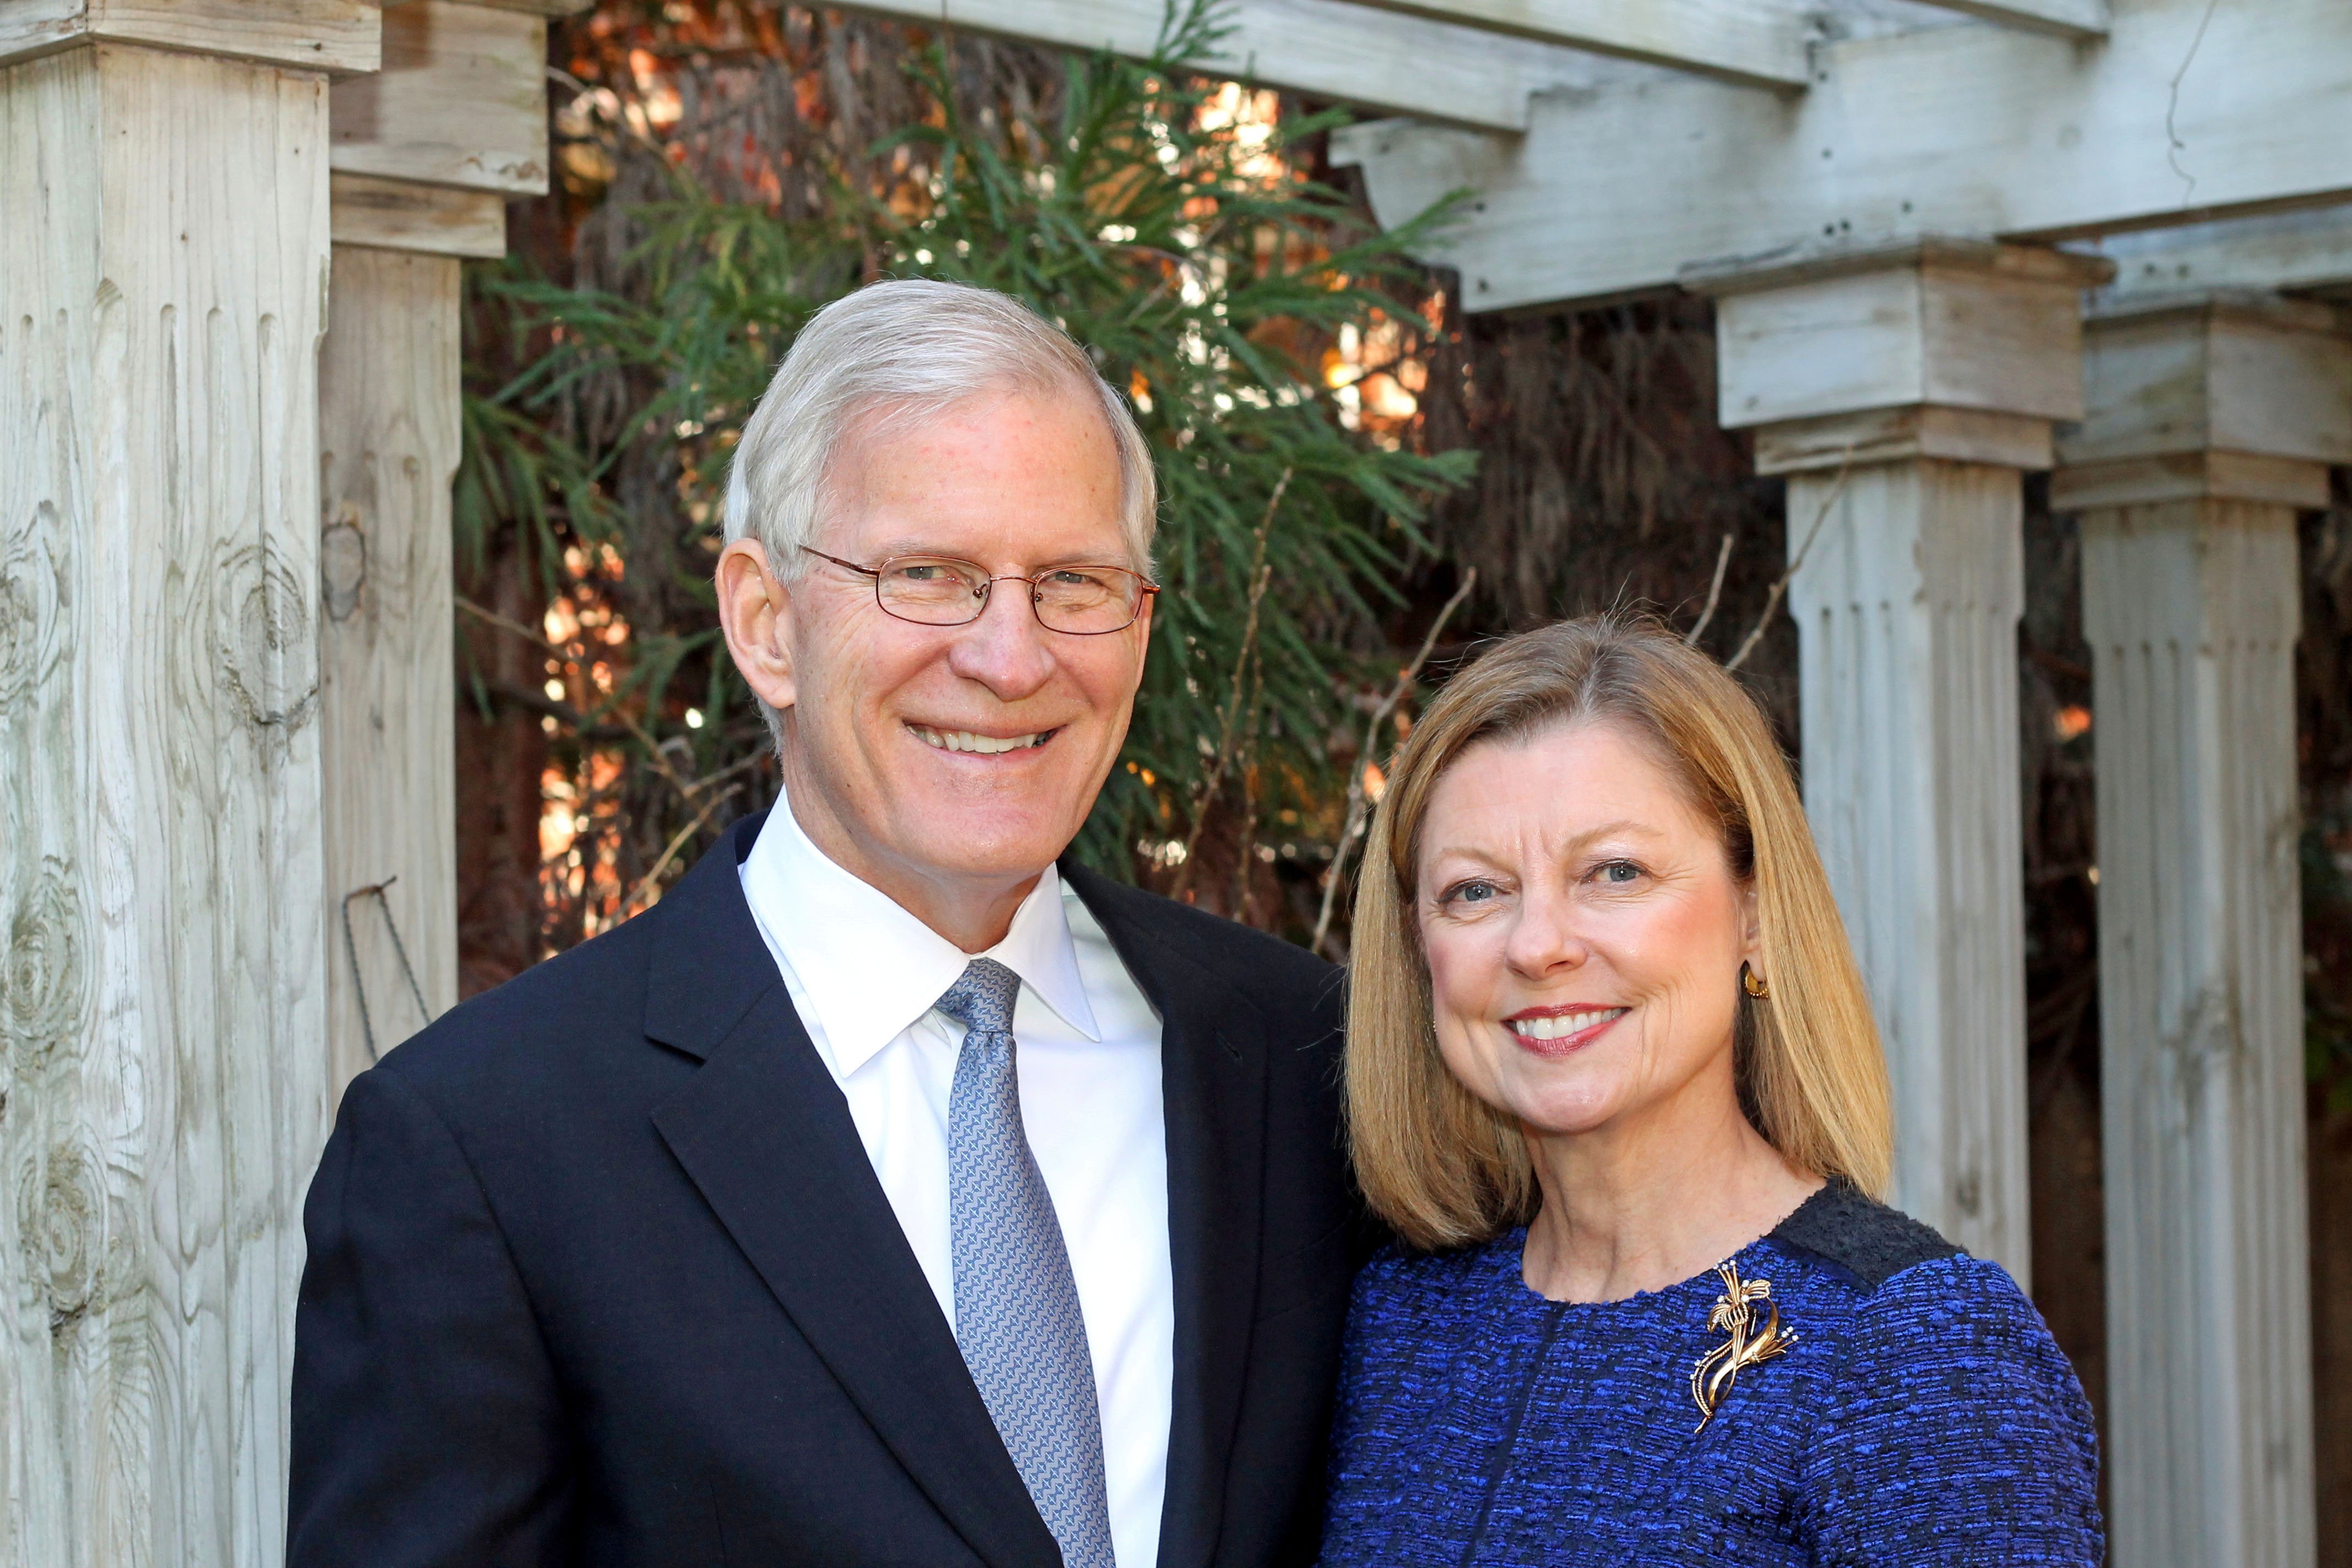 Mackey and Susan McDonald (Board Chair) Children's Home Society of NC